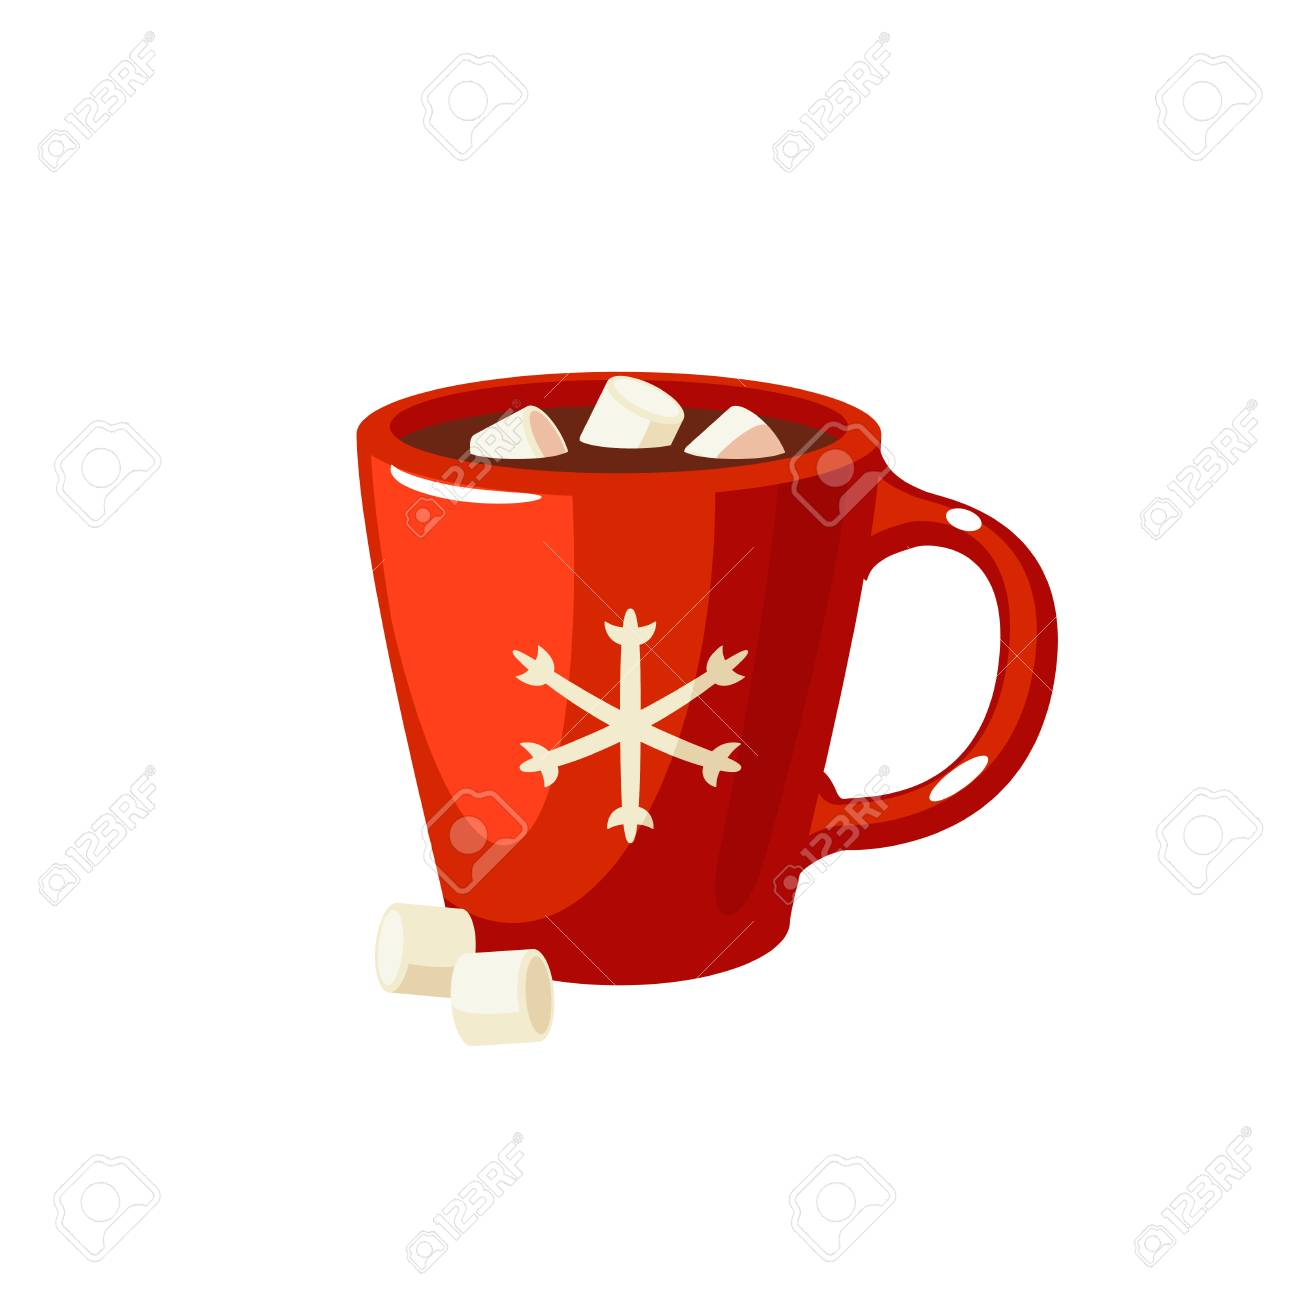 winter dessert beverage cup of hot chocolate with marshmallows rh 123rf com hot chocolate cartoon images hot chocolate cart trike uk